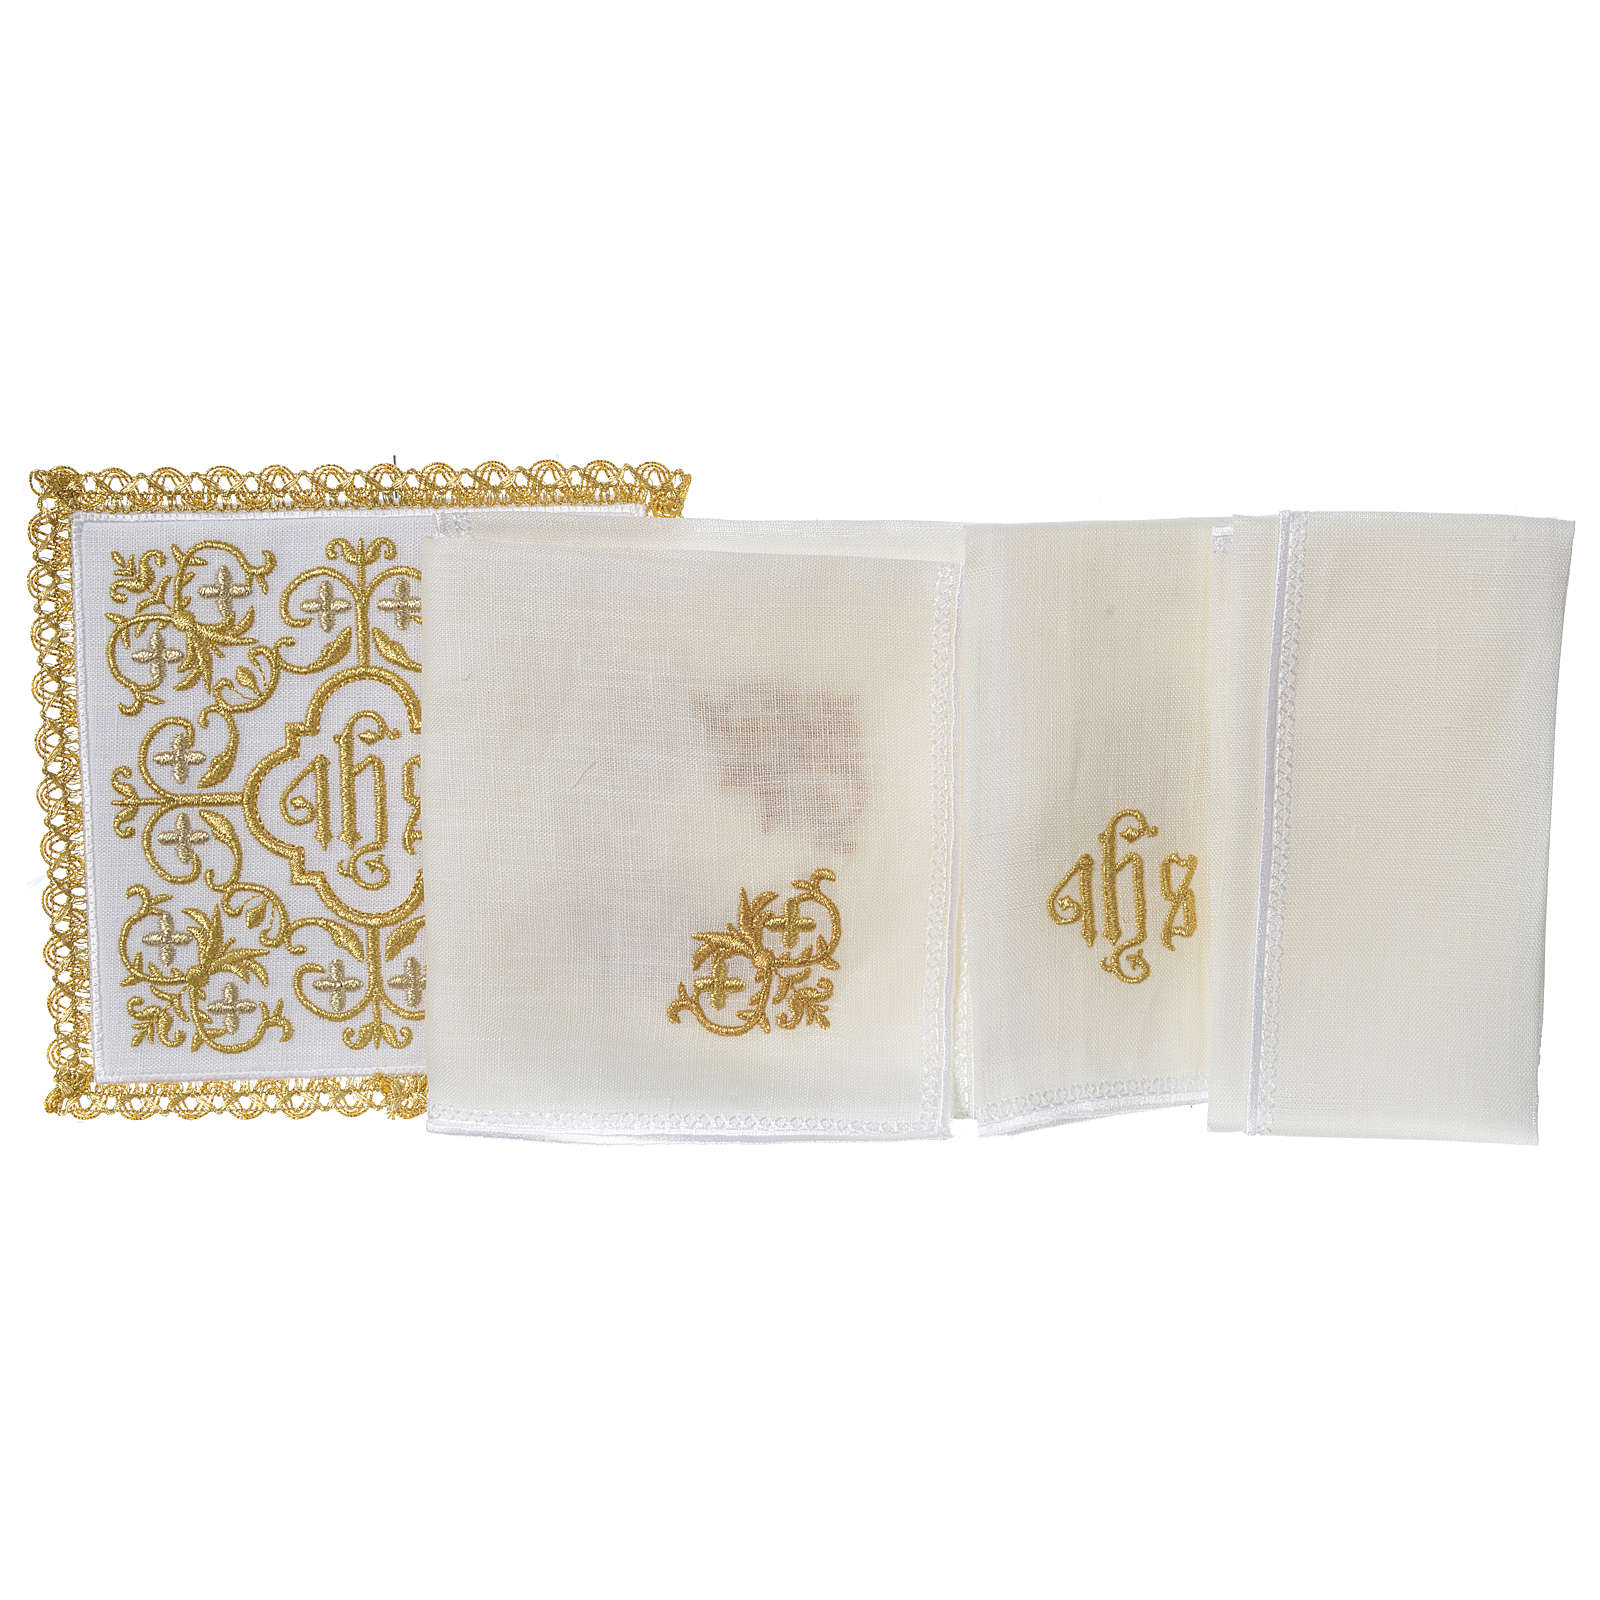 Altar linen set 100% linen IHS and flowers design 4